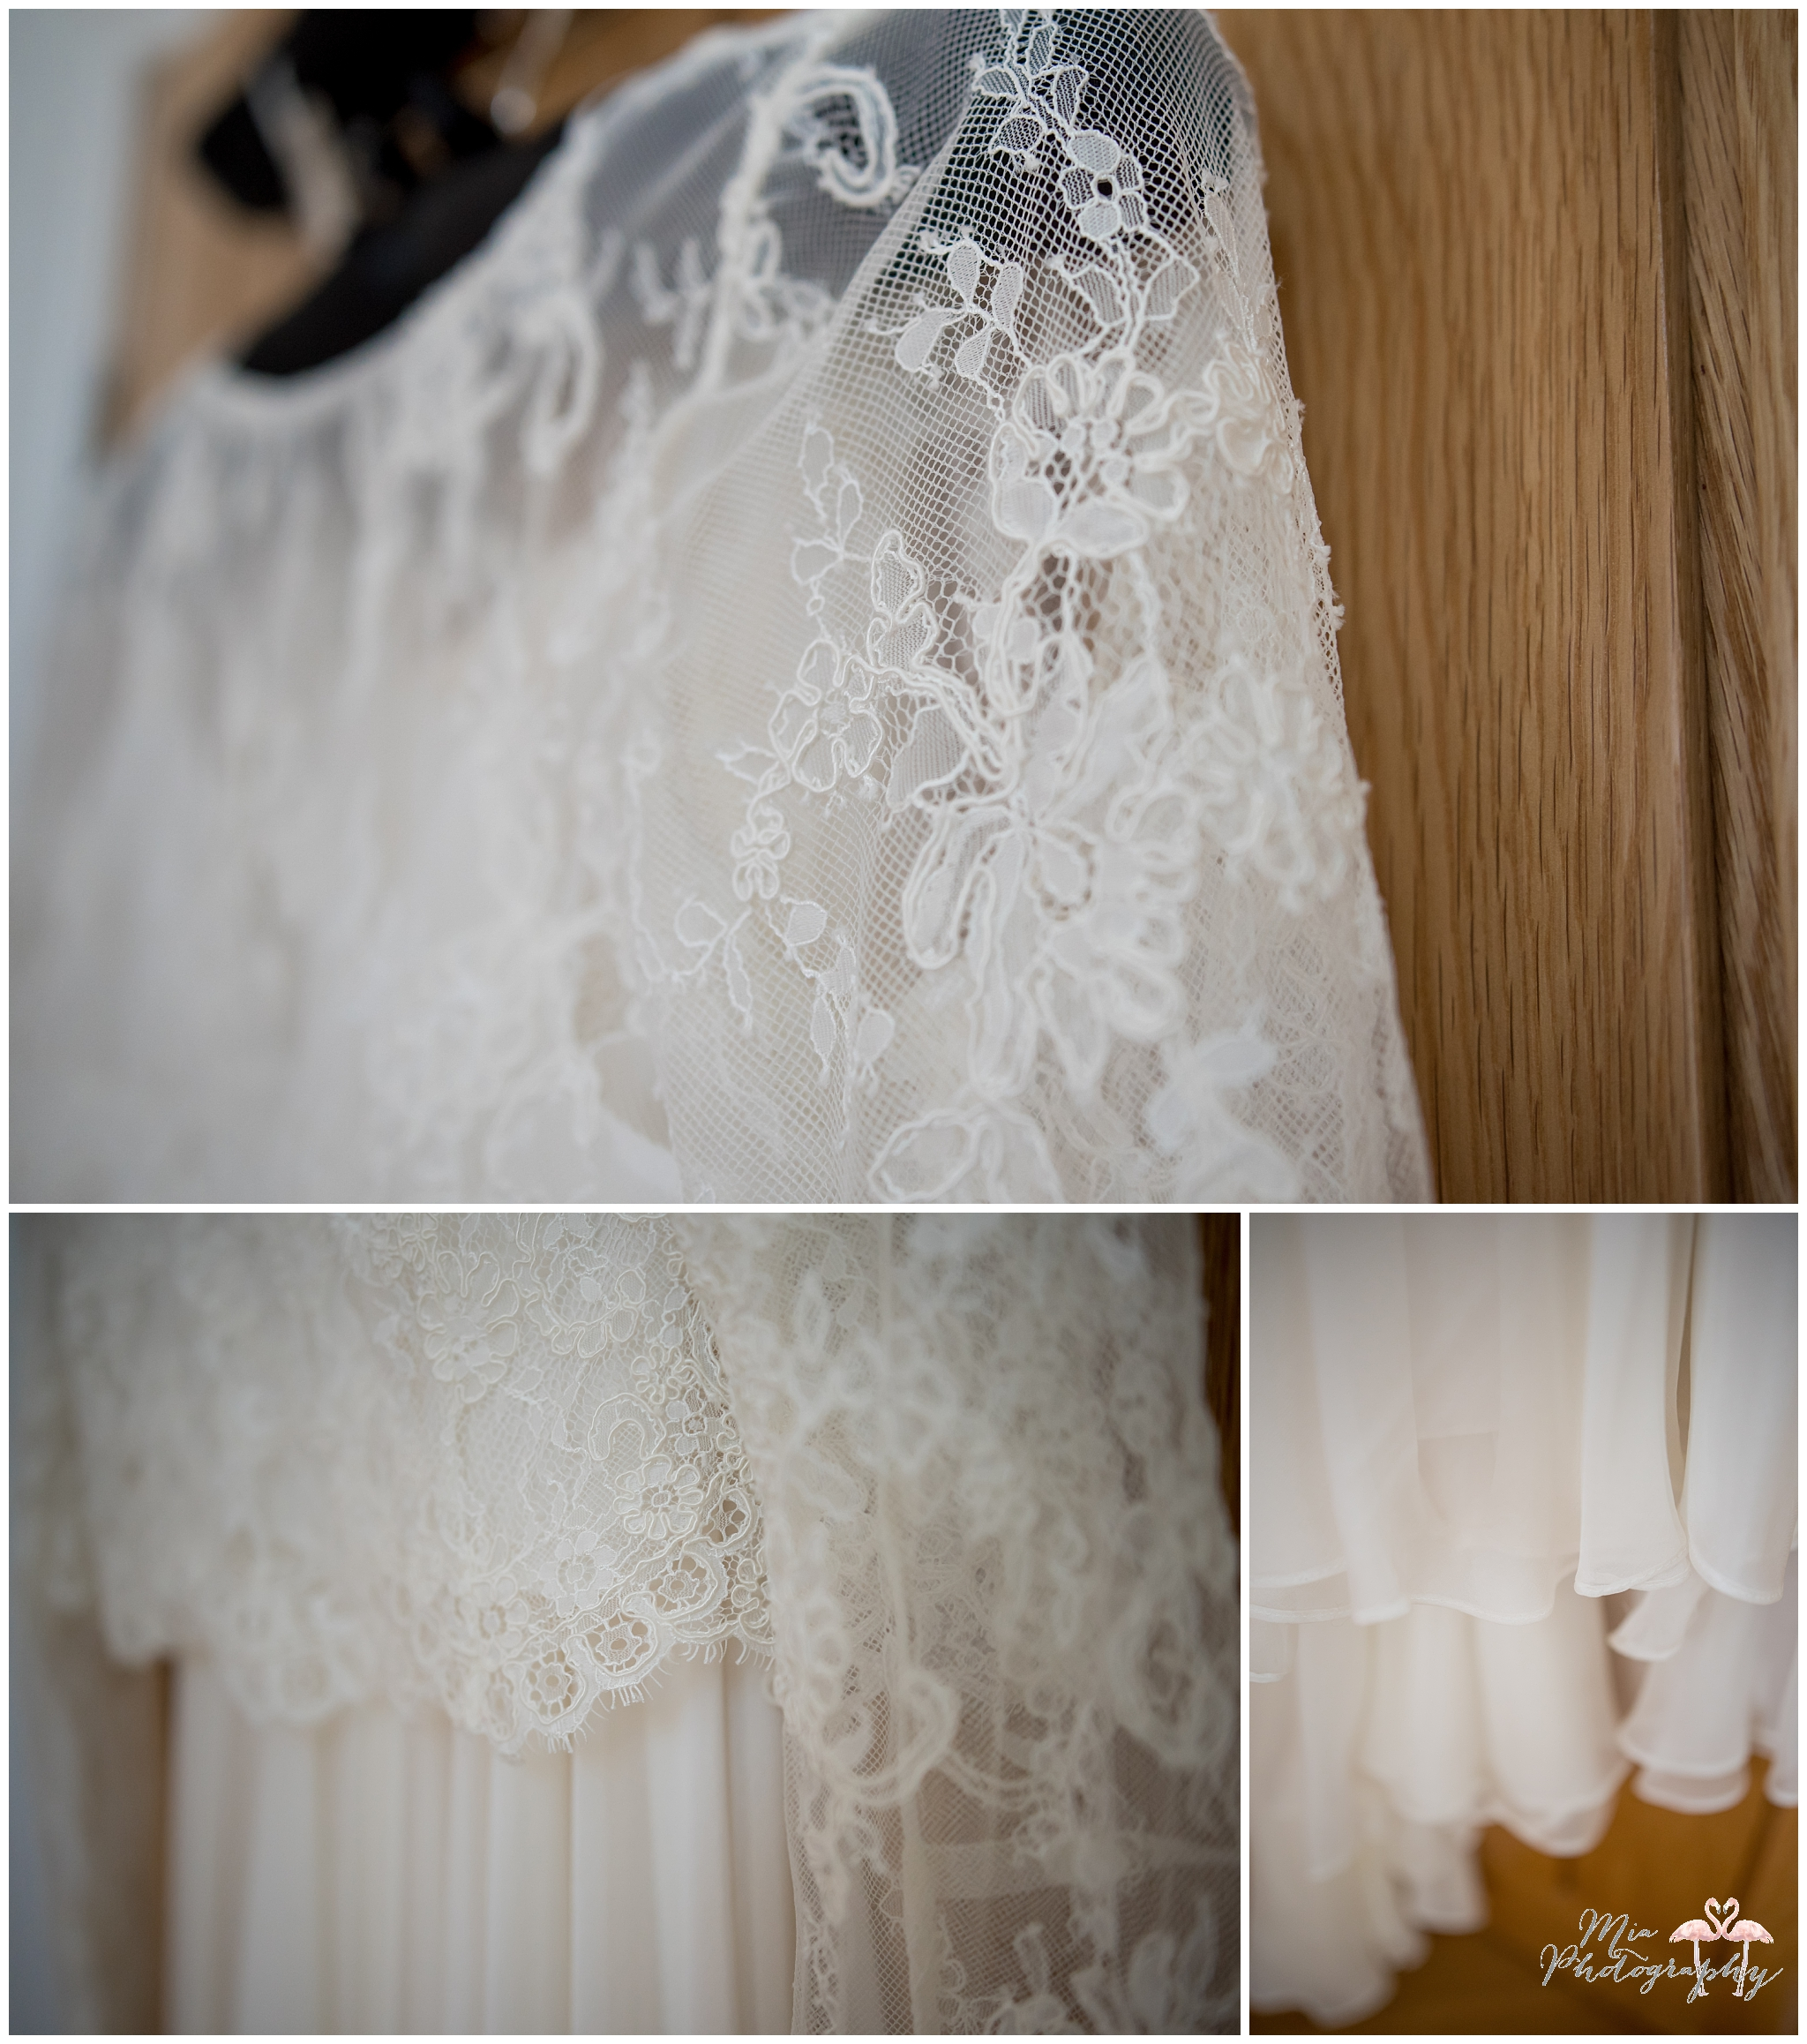 Bride's dress hanging up